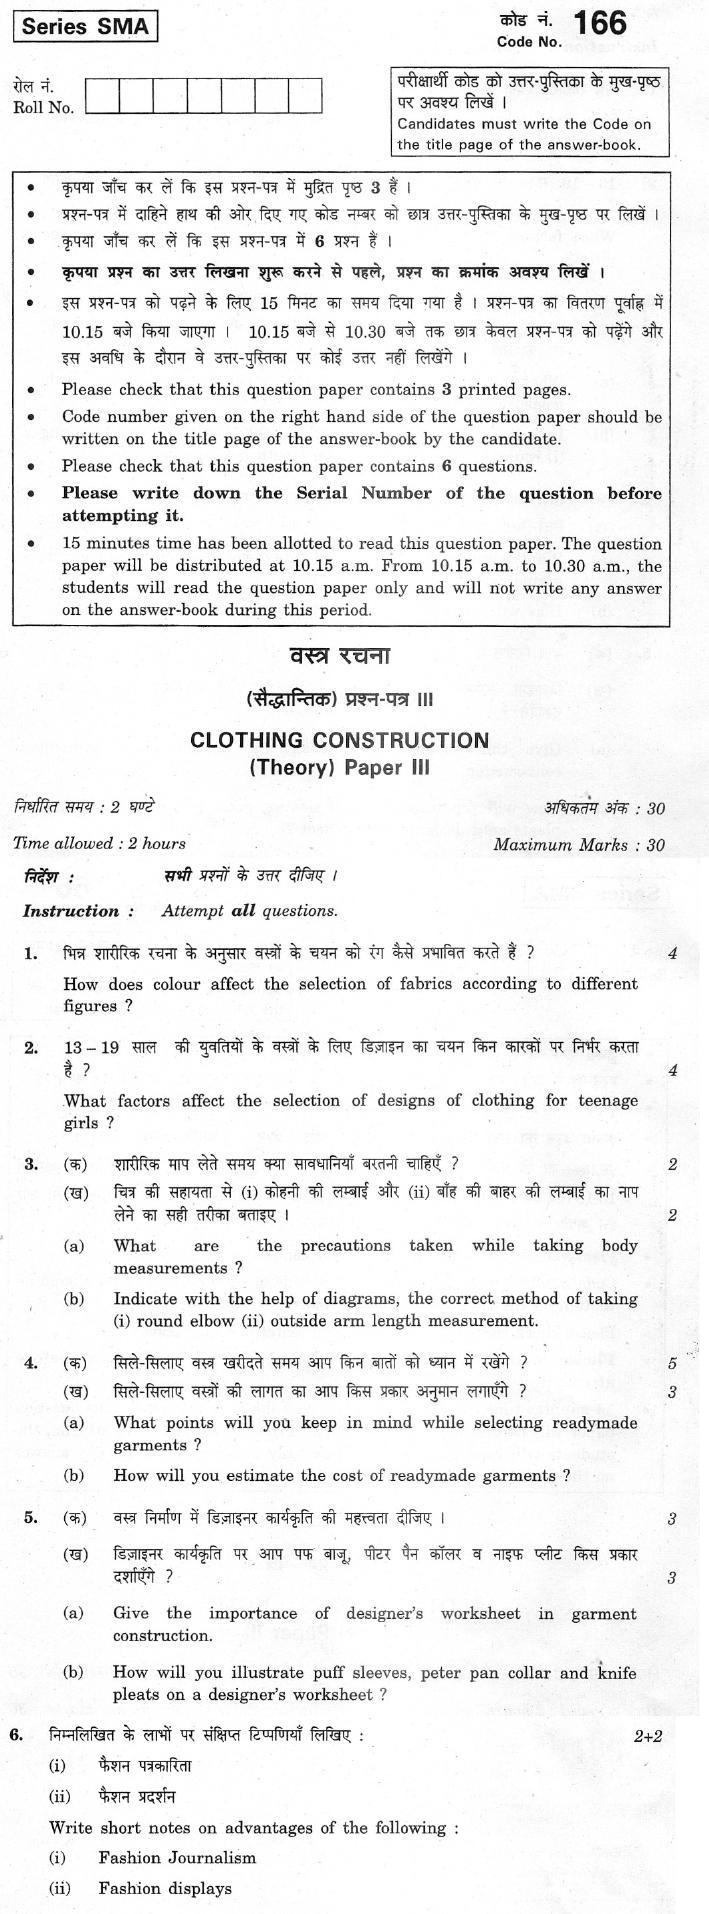 CBSE Class XII Previous Year Question Paper 2012 Clothing Construction PaperIII